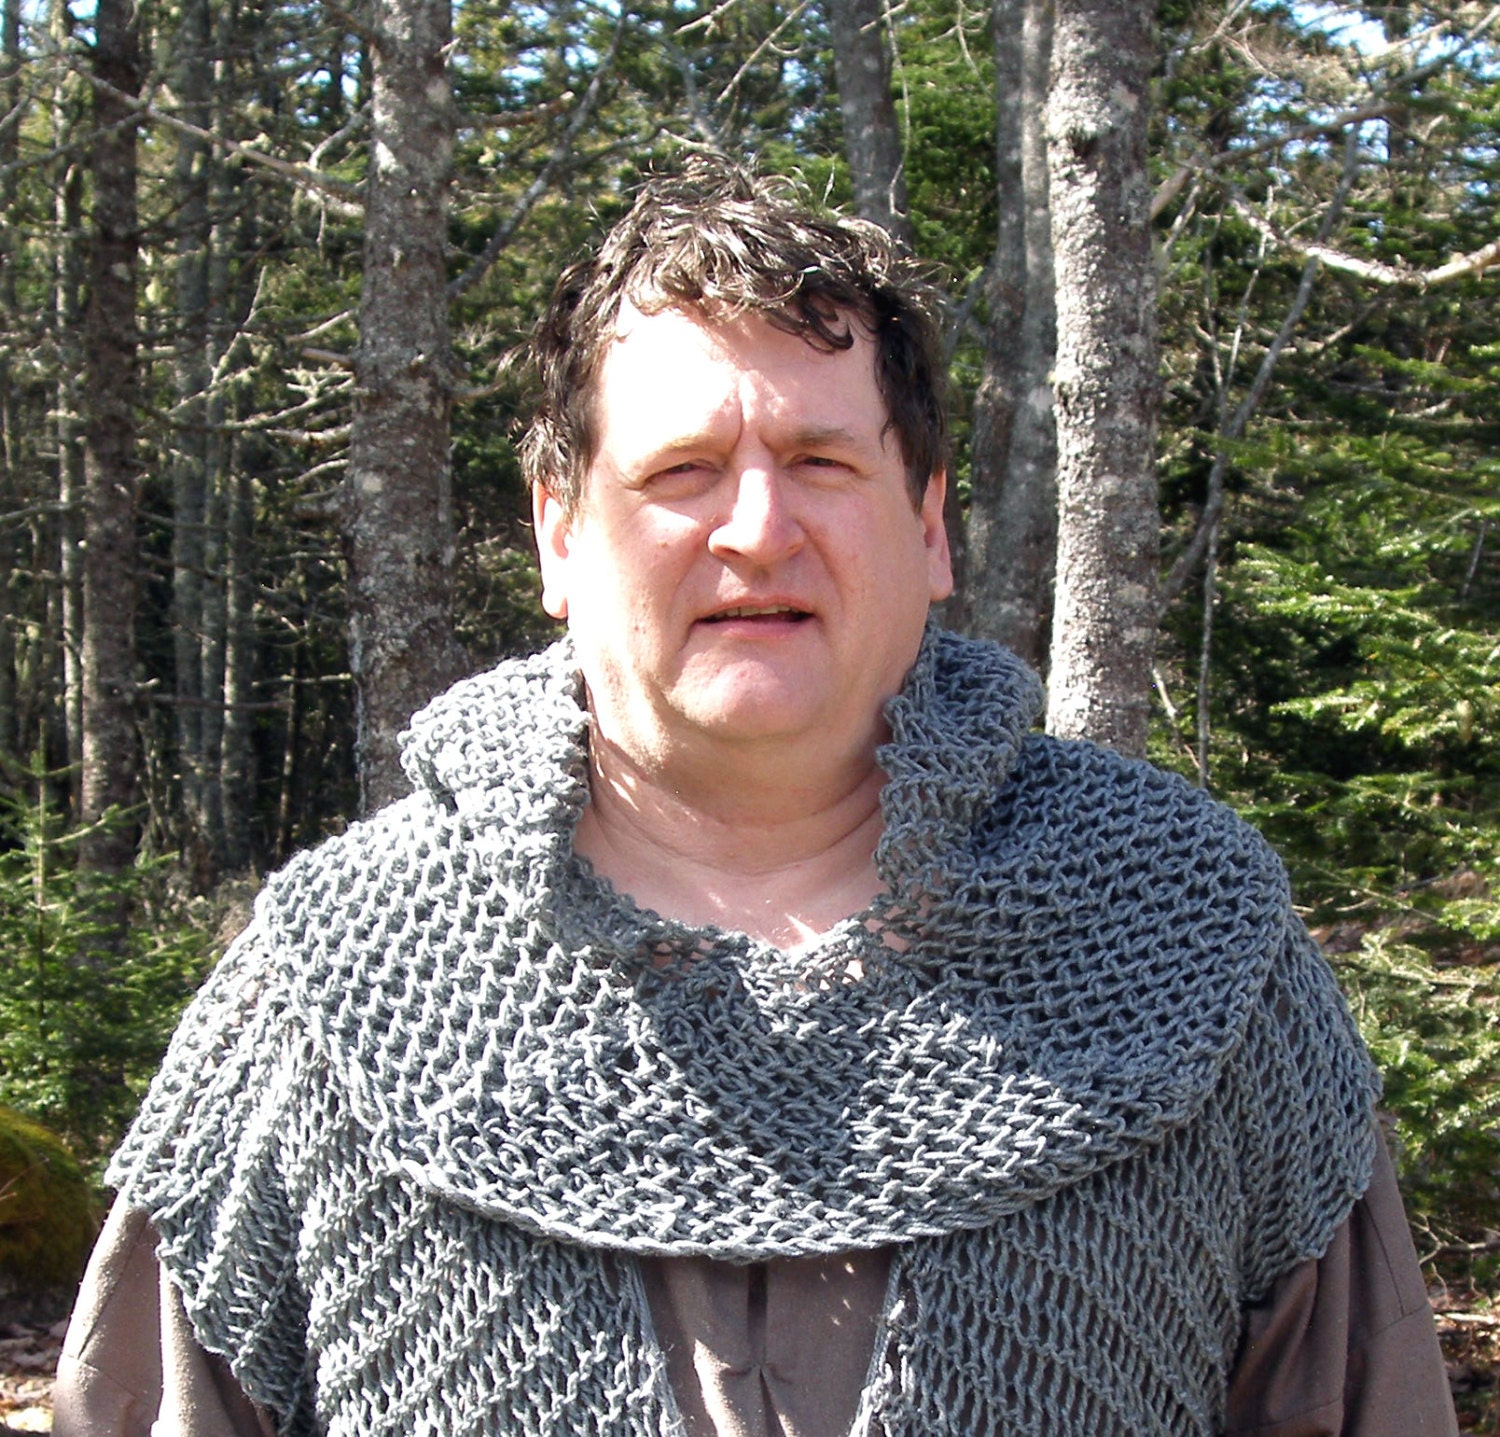 Chainmail Hood Knitting Pattern : Faux chain mail hood a hand-knit coif with fitted cowl